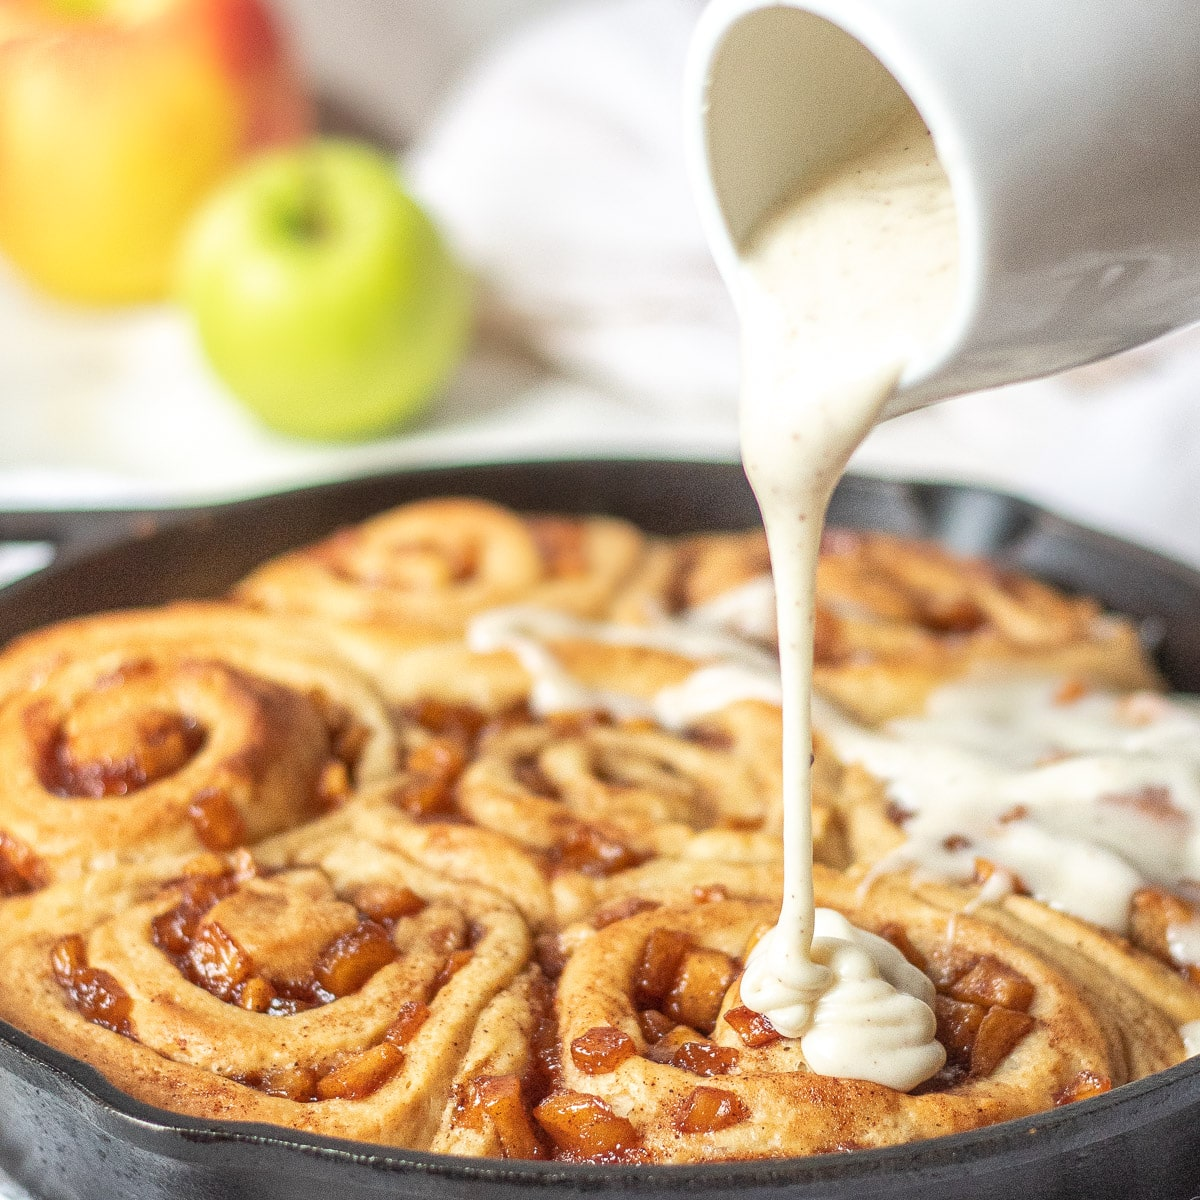 Apple Pie Cinnamon Rolls baked in a cast iron skillet, being drizzled with brown butter cream cheese glaze with apples in the background